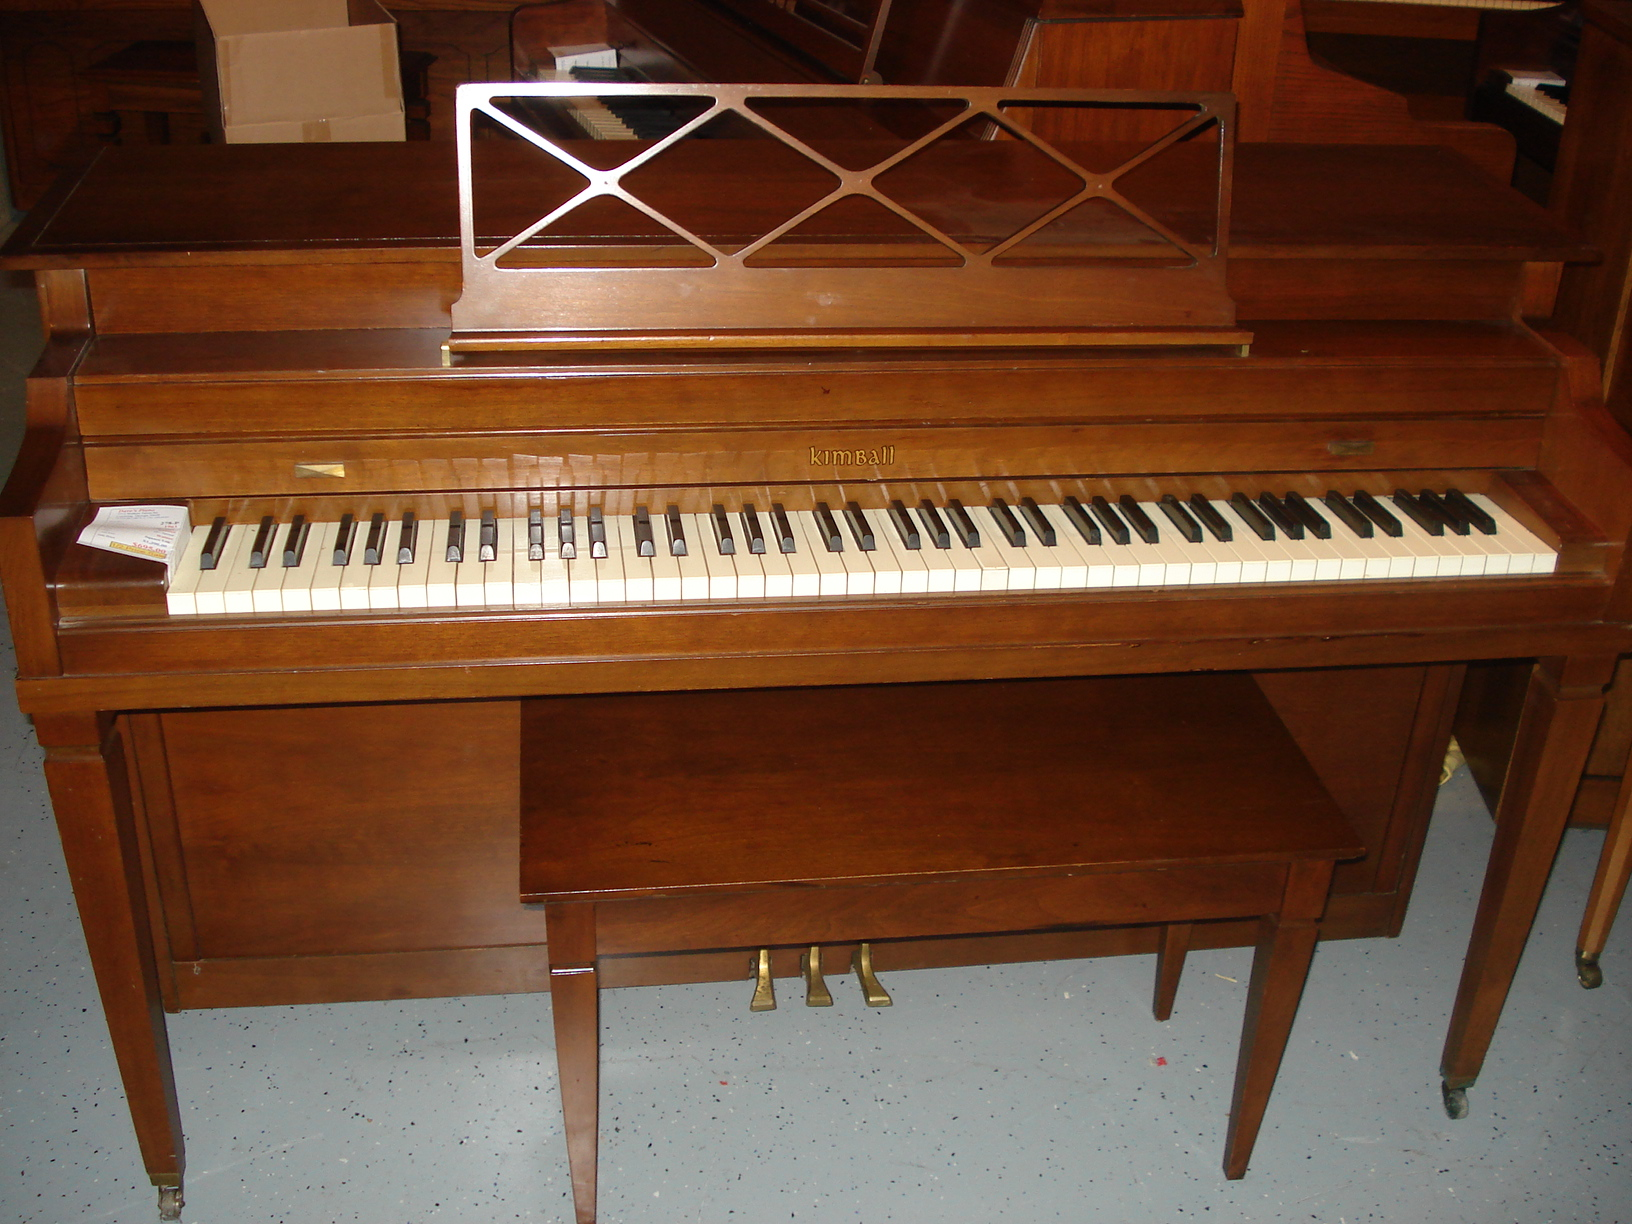 1961 Kimball Spinet 36 Quot